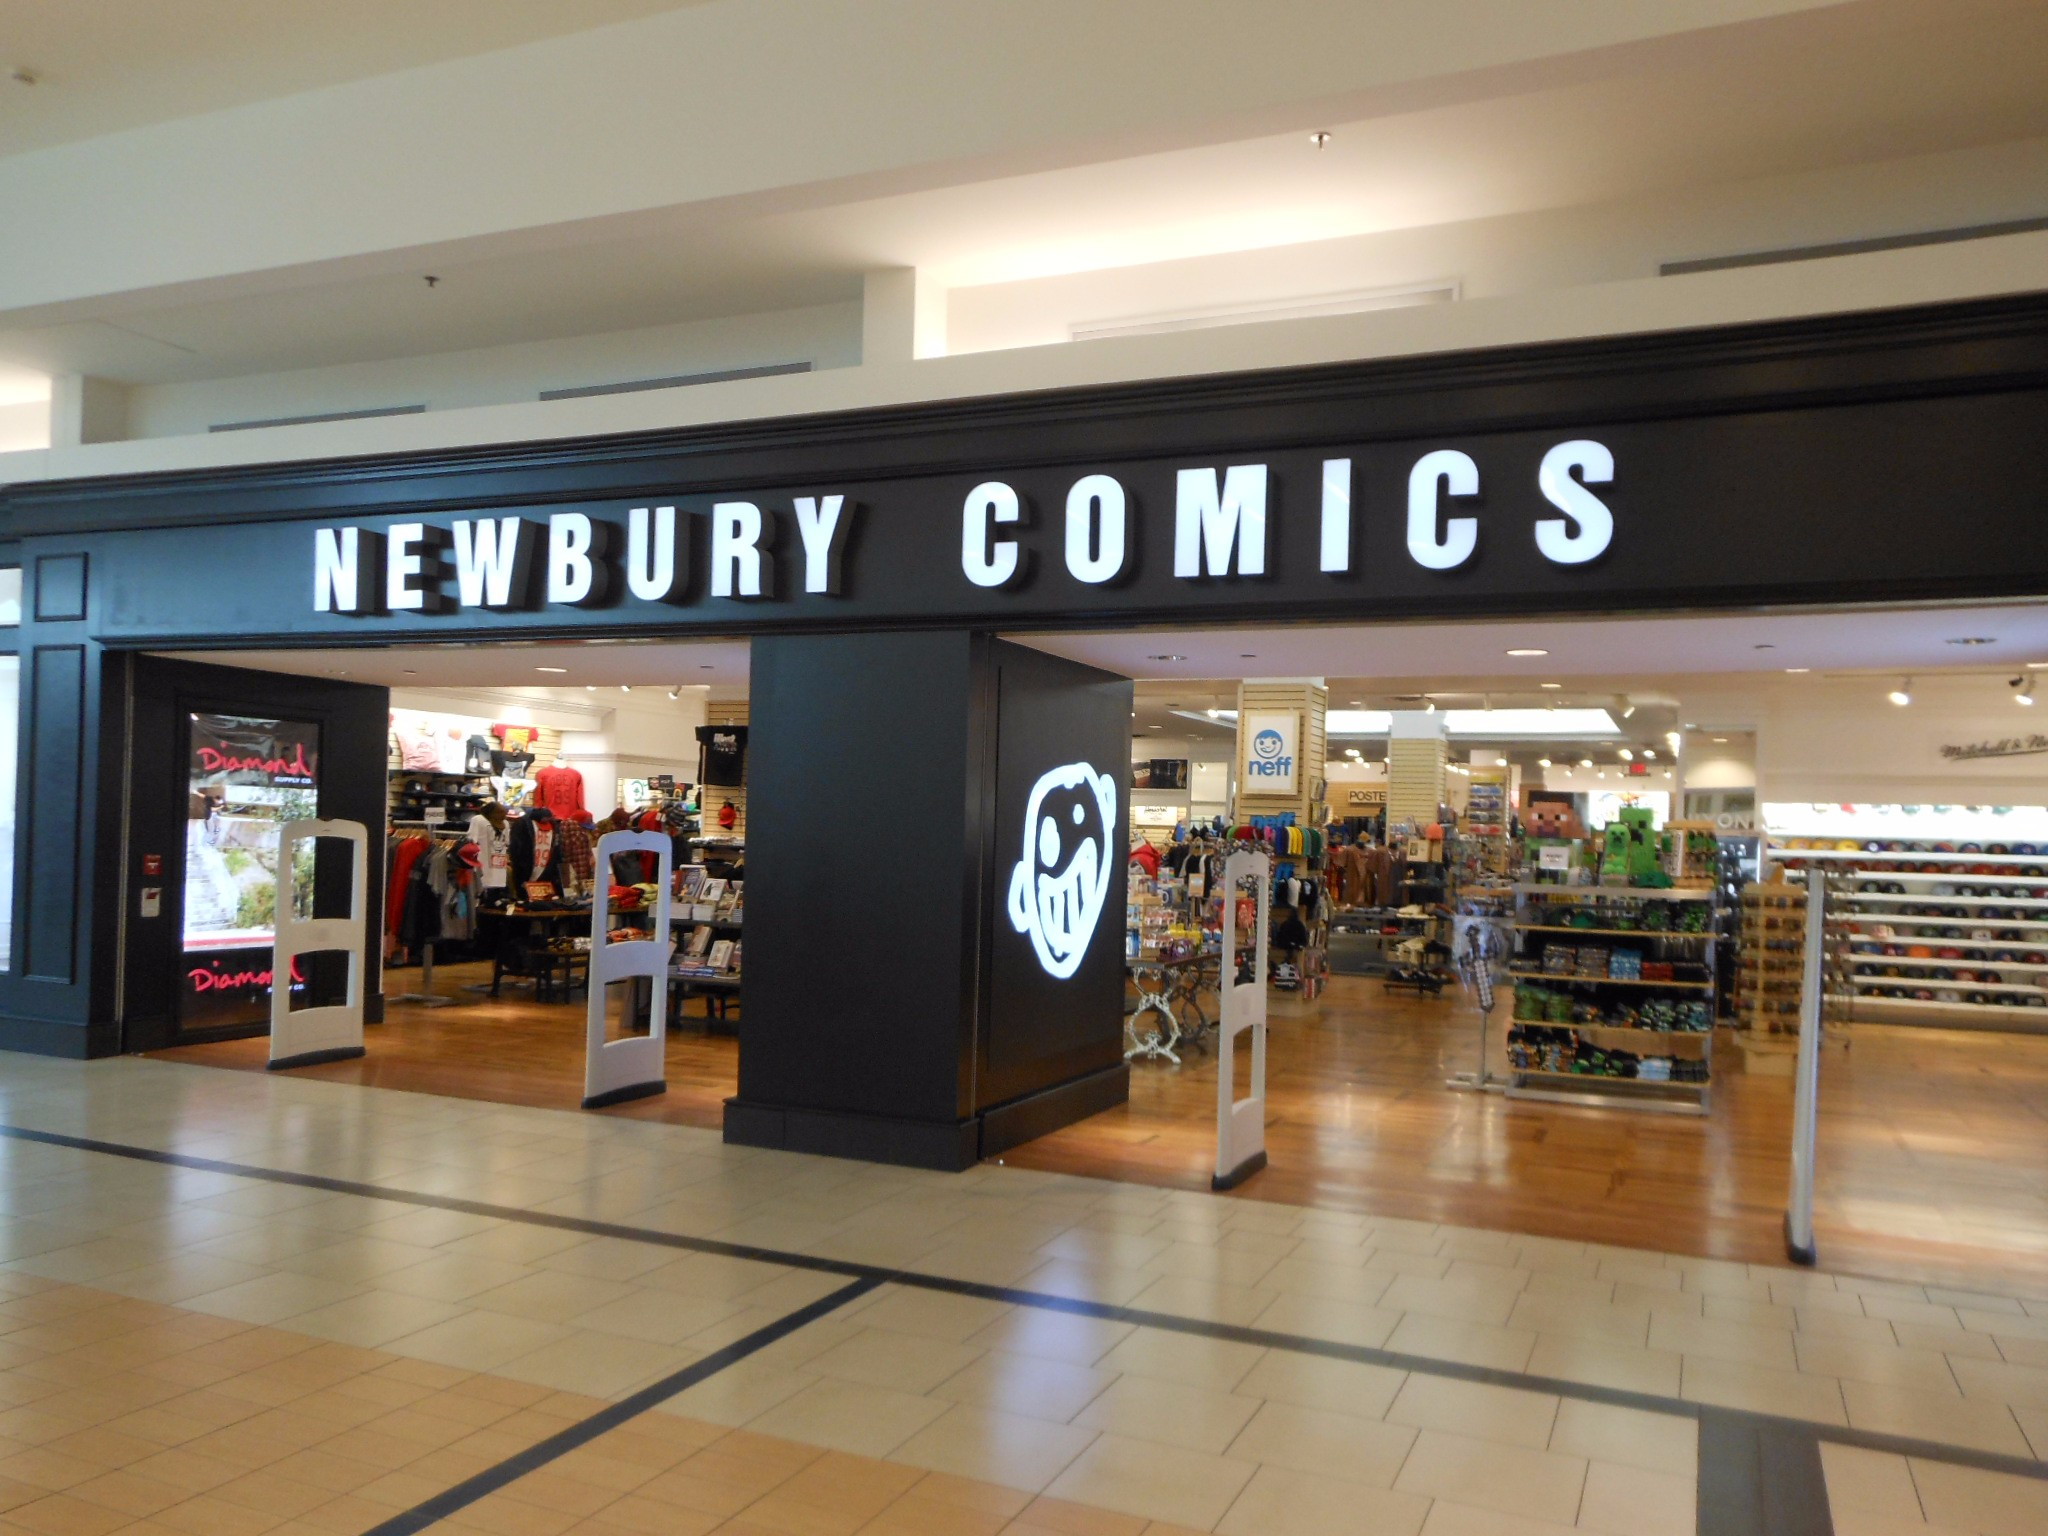 Newbury Comics, Inc. was registered on as a PROFIT Regular Corporation type incorporated at W 2ND AVE STE , SPOKANE, WA. The agent of the company is Northwest Registered Agent, Llc. This business record status is